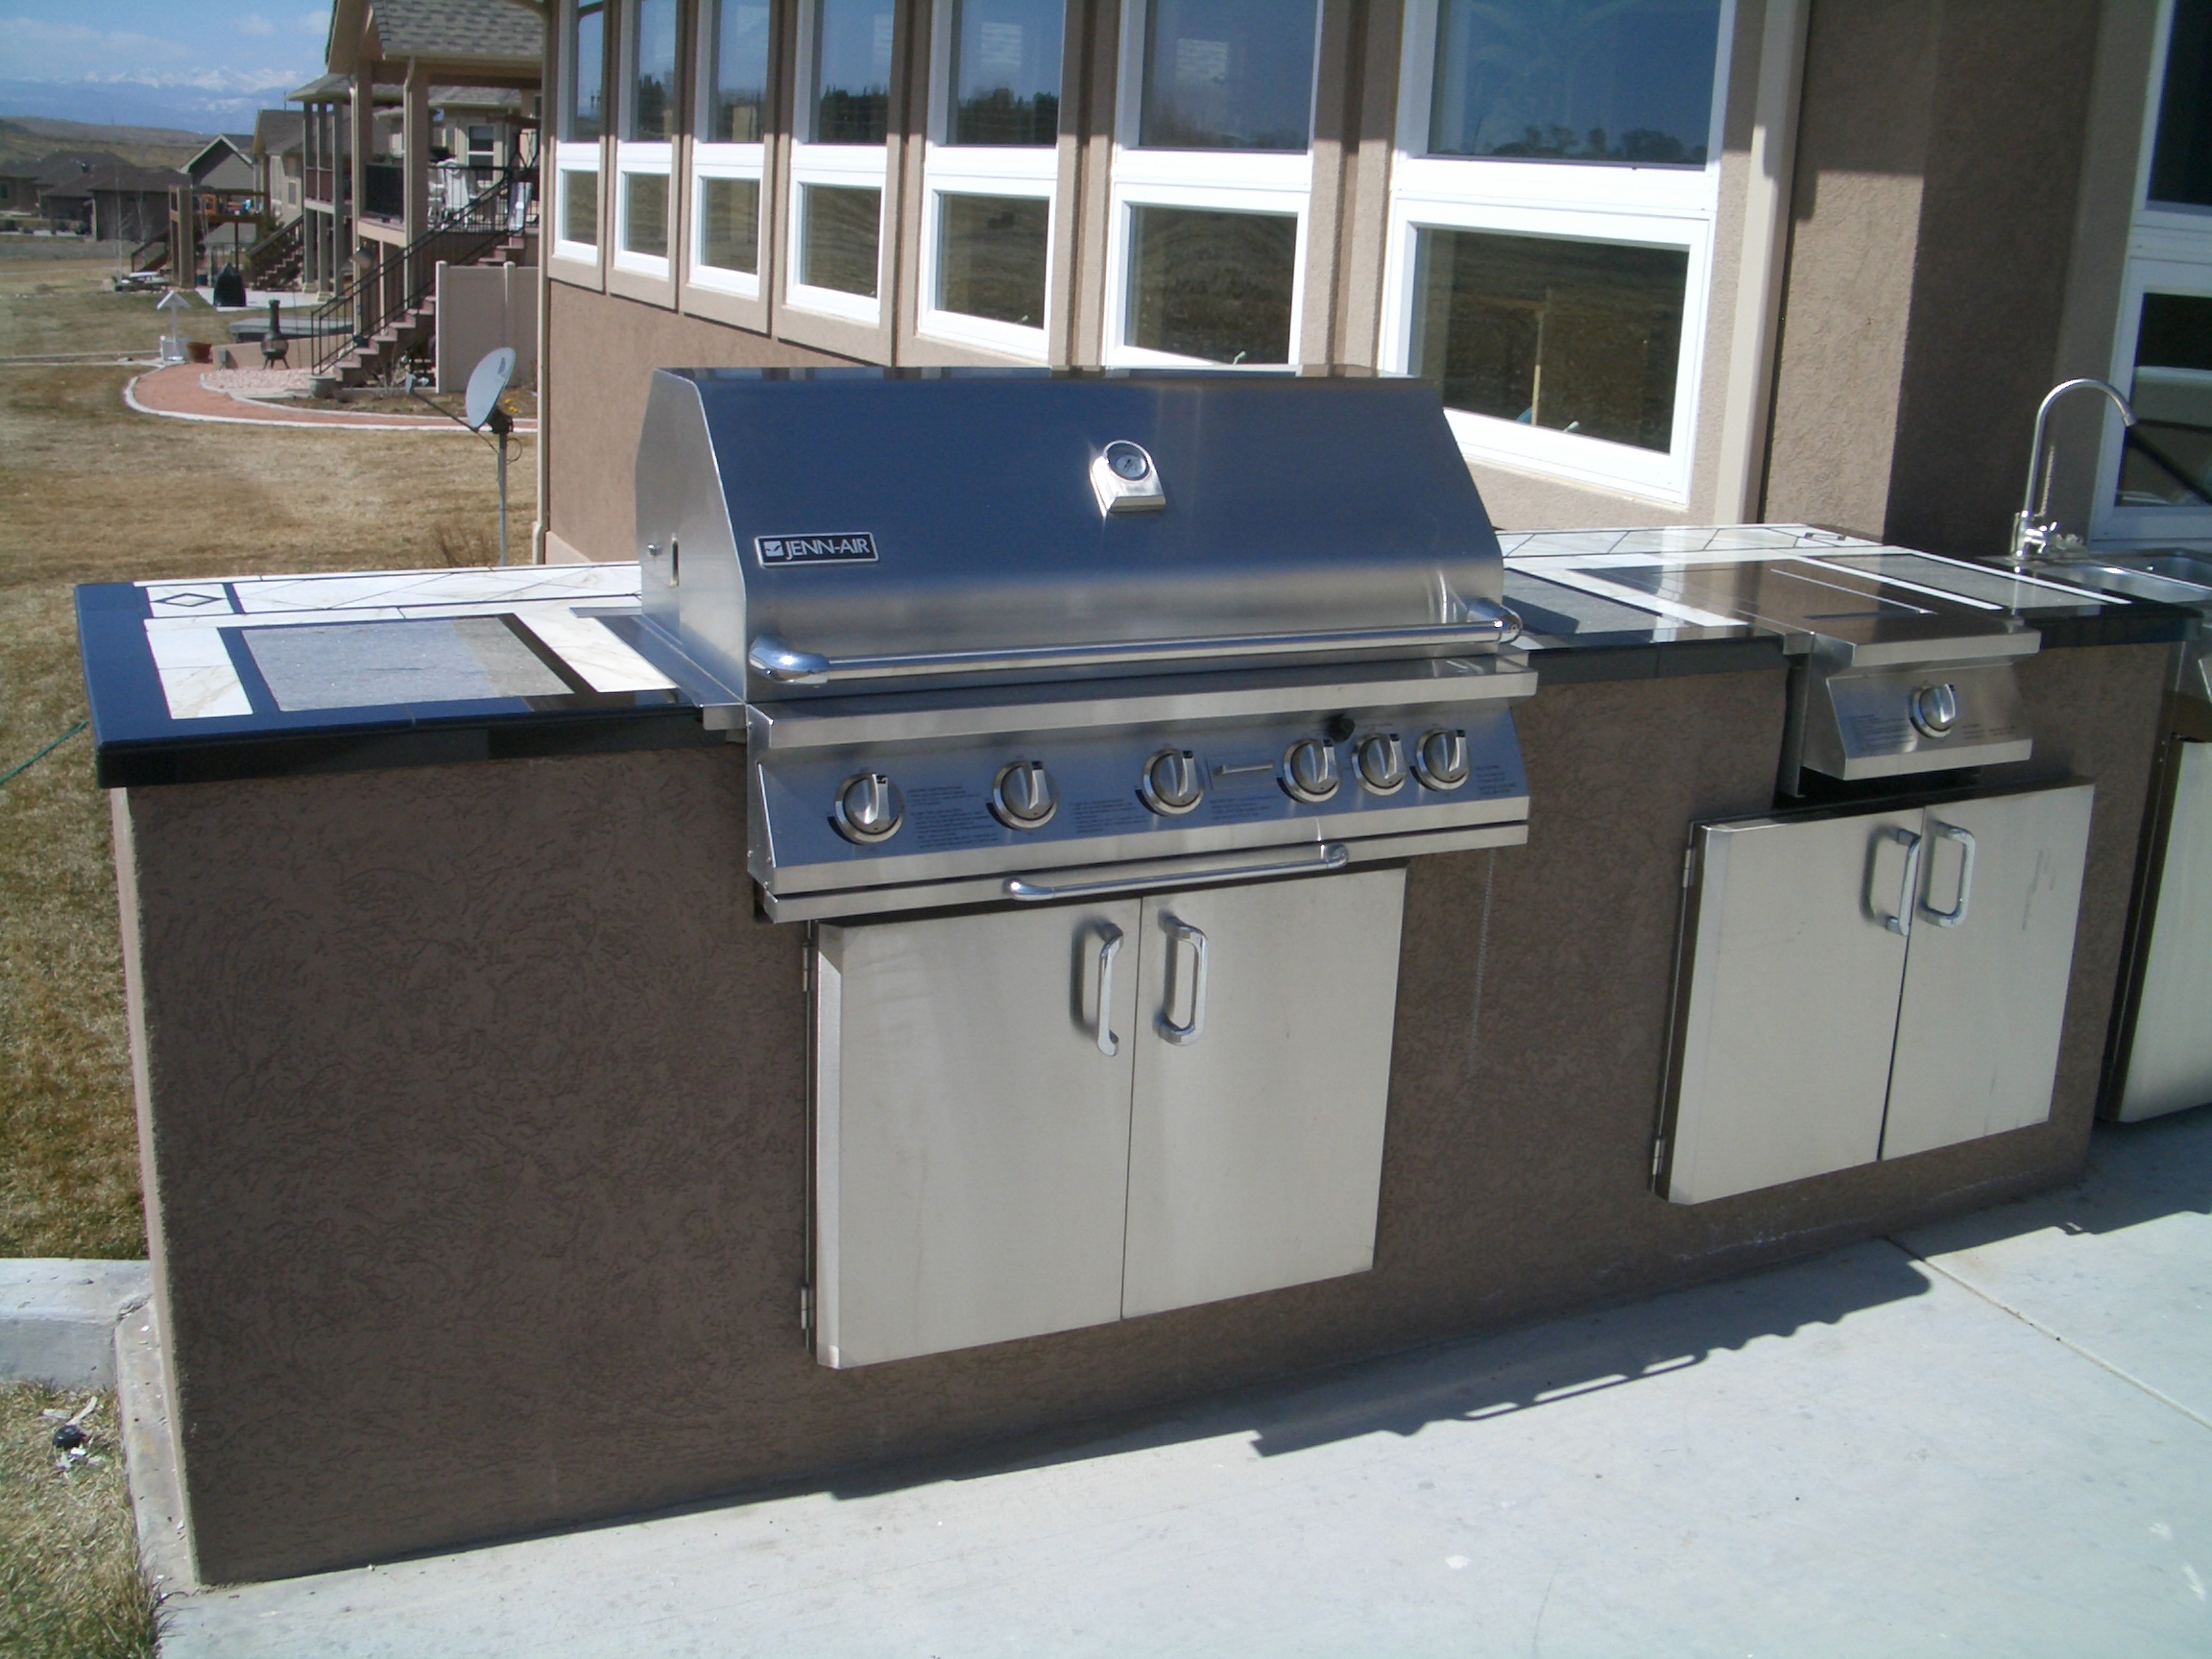 Outdoor kitchens and barbecue islands in fort collins for Outdoor kitchen barbecue grills